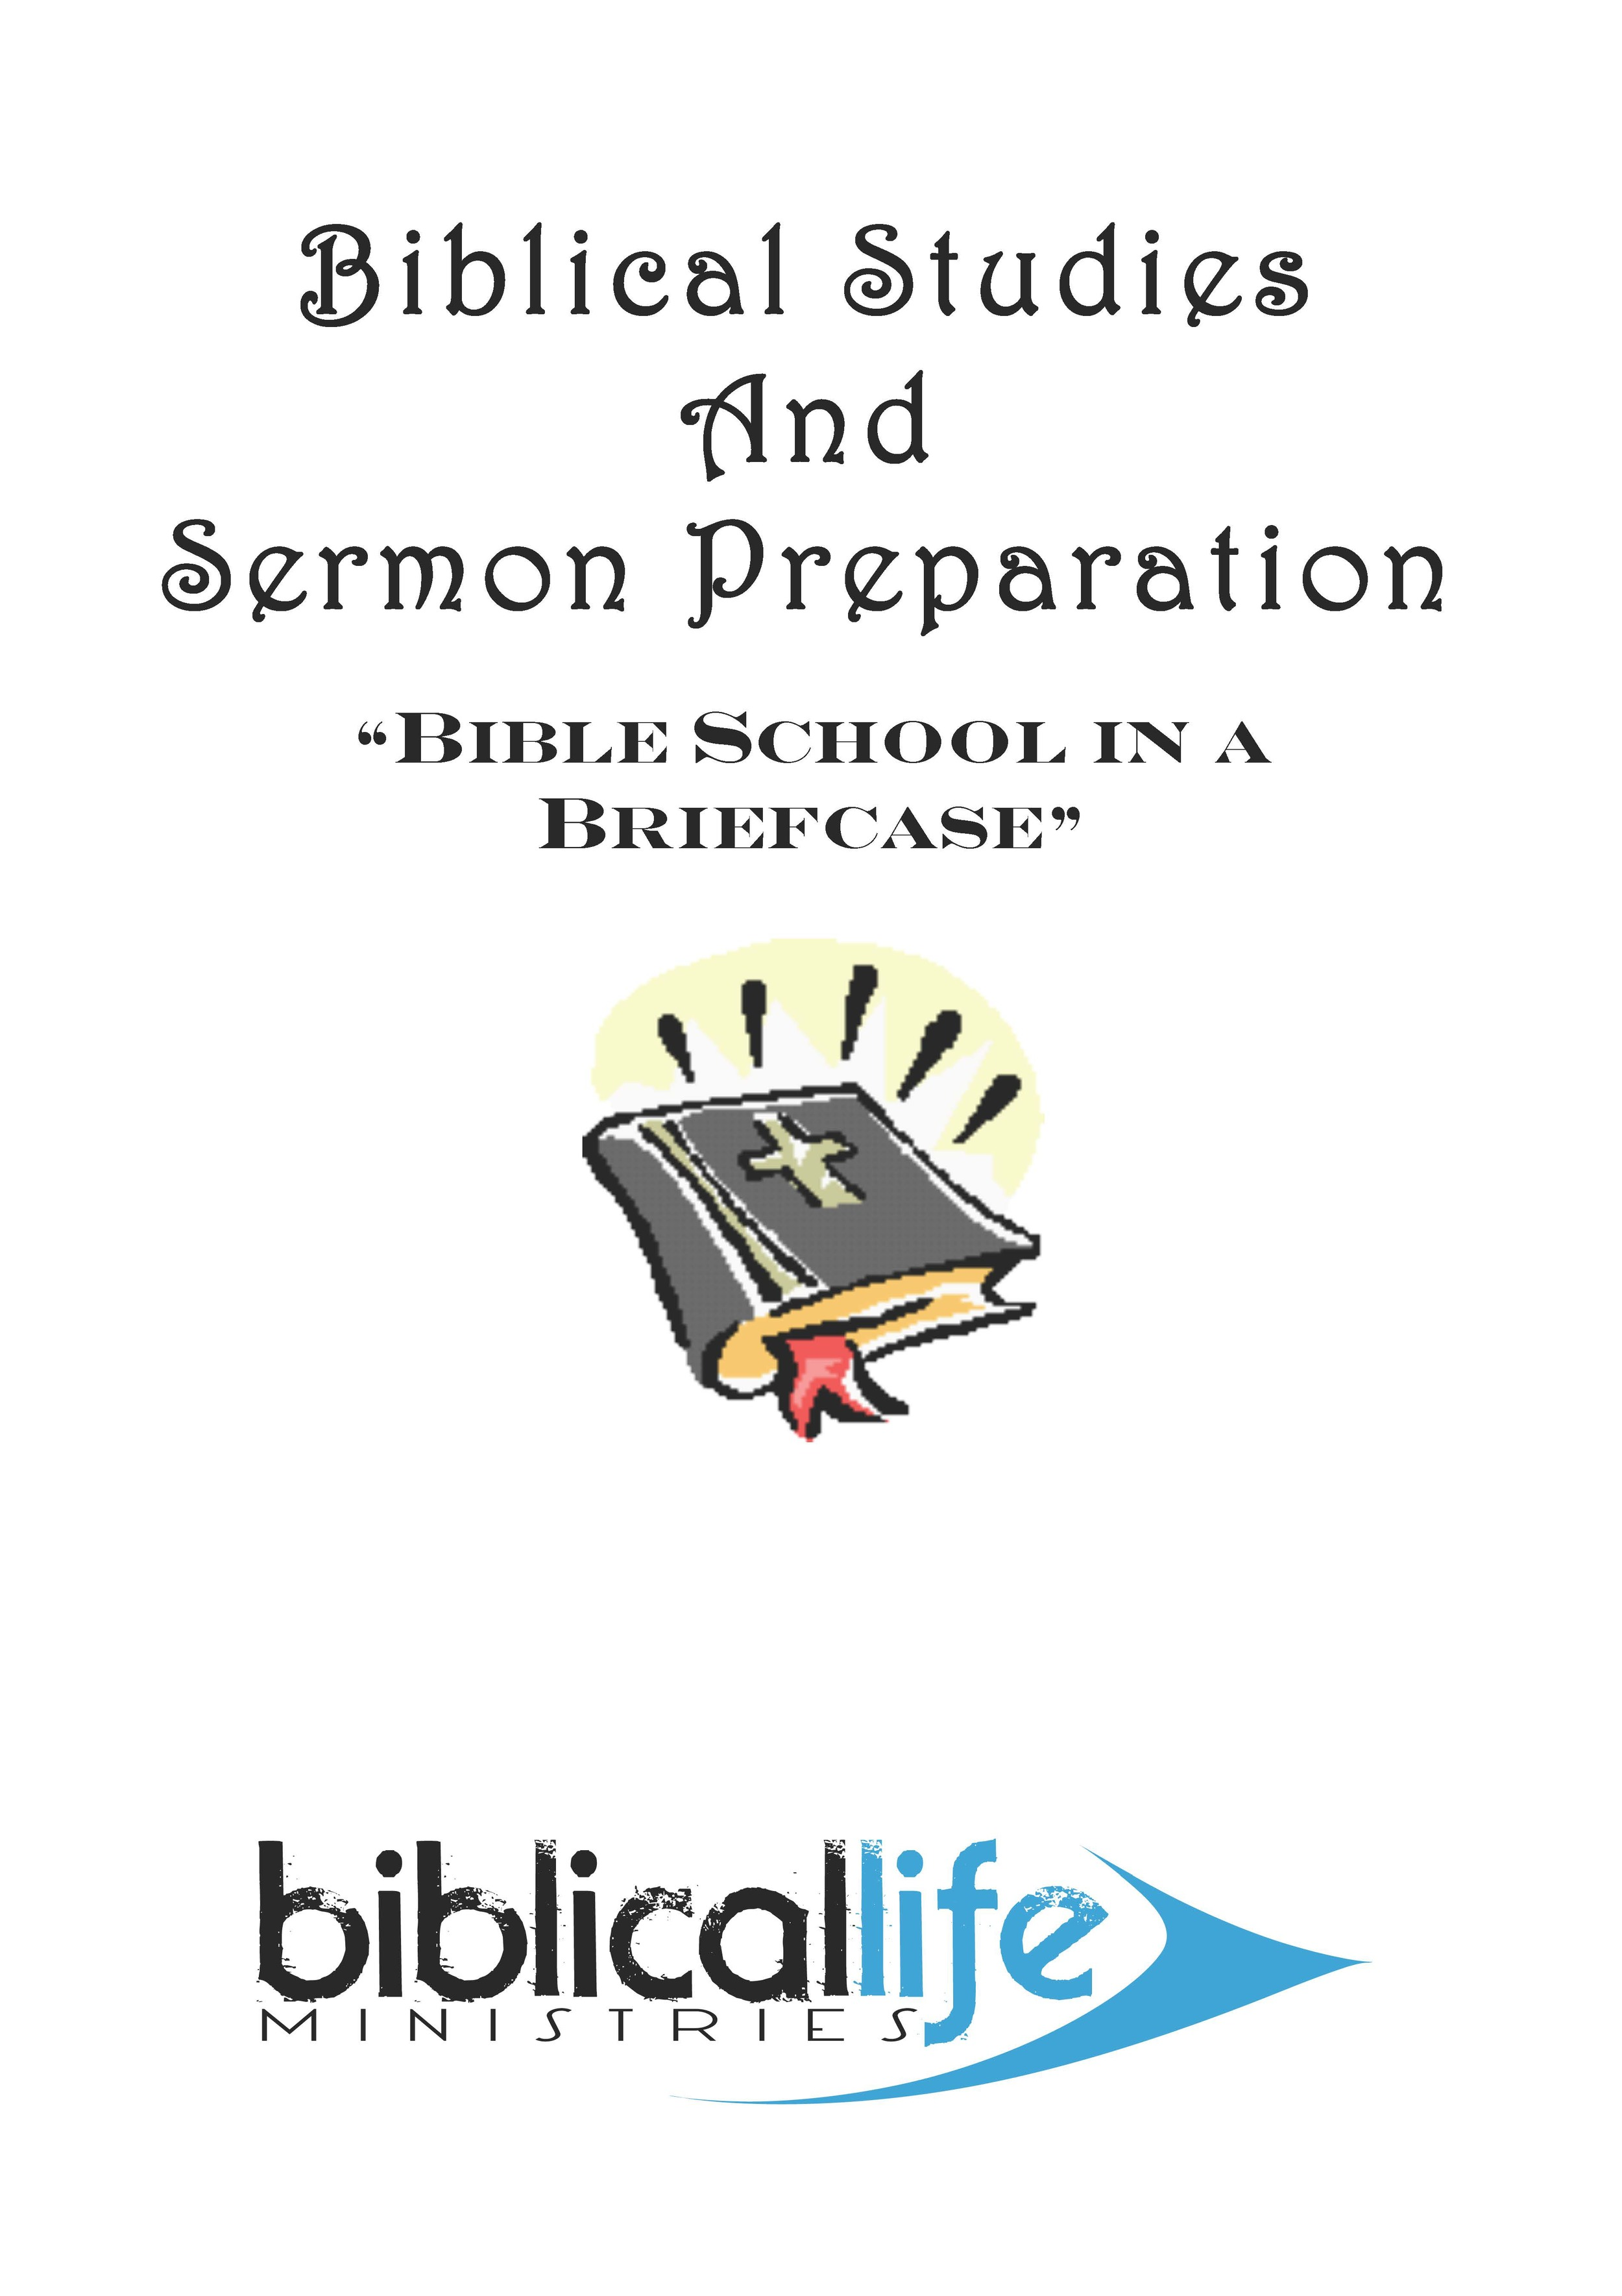 Biblical Studies and Sermon Preparation  : This class concentrates on learning methods of Bible study, rightly dividing the Word of truth, with an emphasis on preparing Biblical messages. 49 page manual.